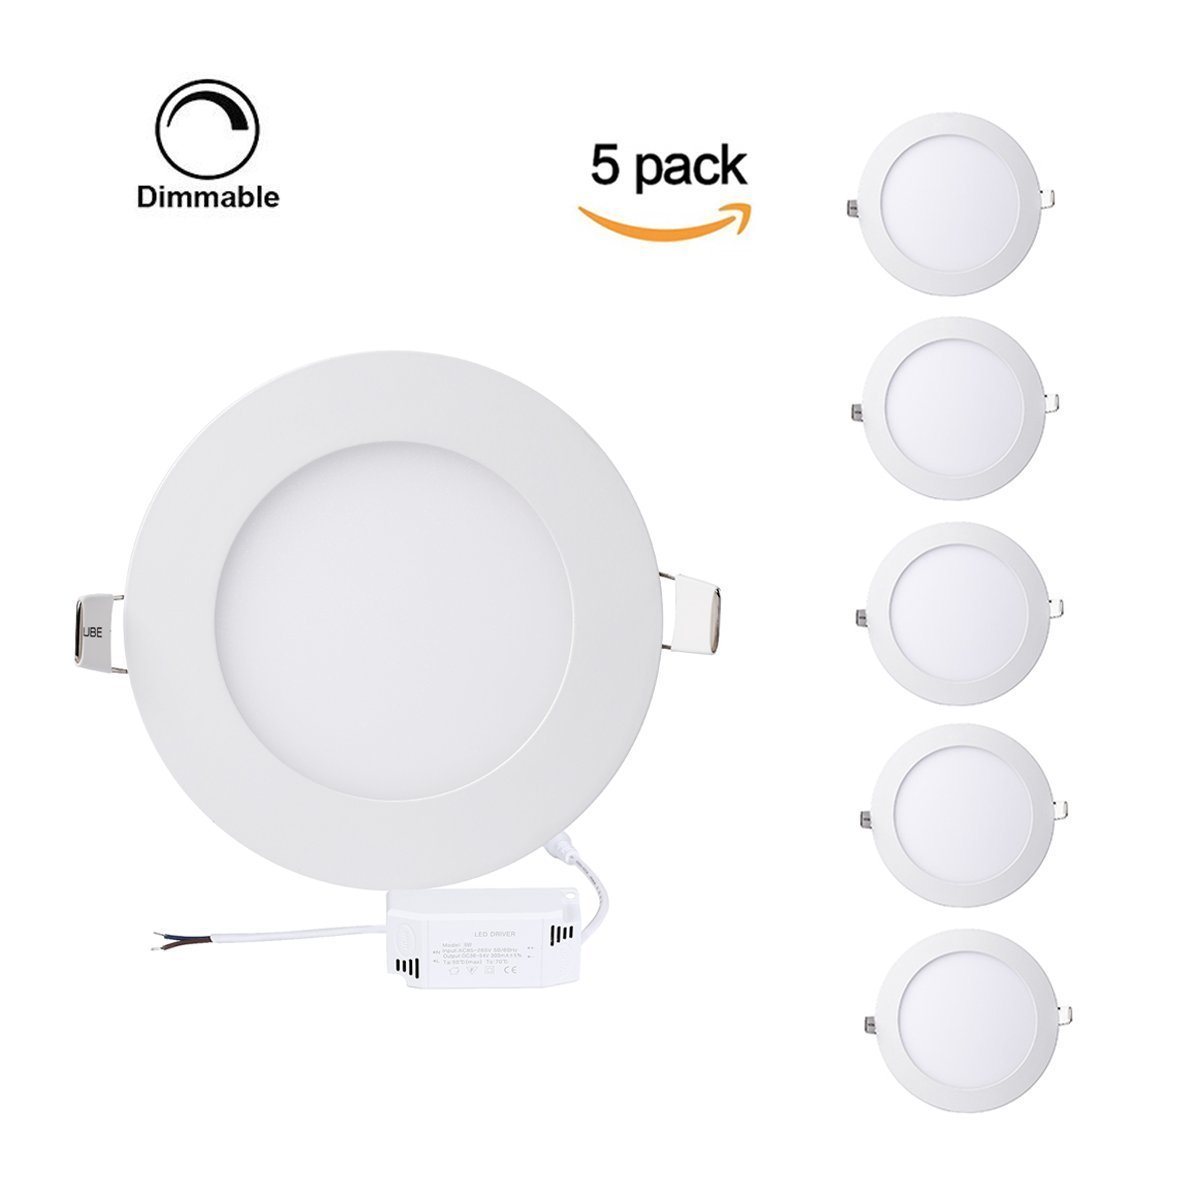 Pack of 5 Units 4-inch Dimmable Round LED Panel Light,Ultra-thin Recessed Ceiling Light, led Flat panel light Downlight with 120V Isolation Driver for Home, Office, Commercial Lighting(6W, 3000K)